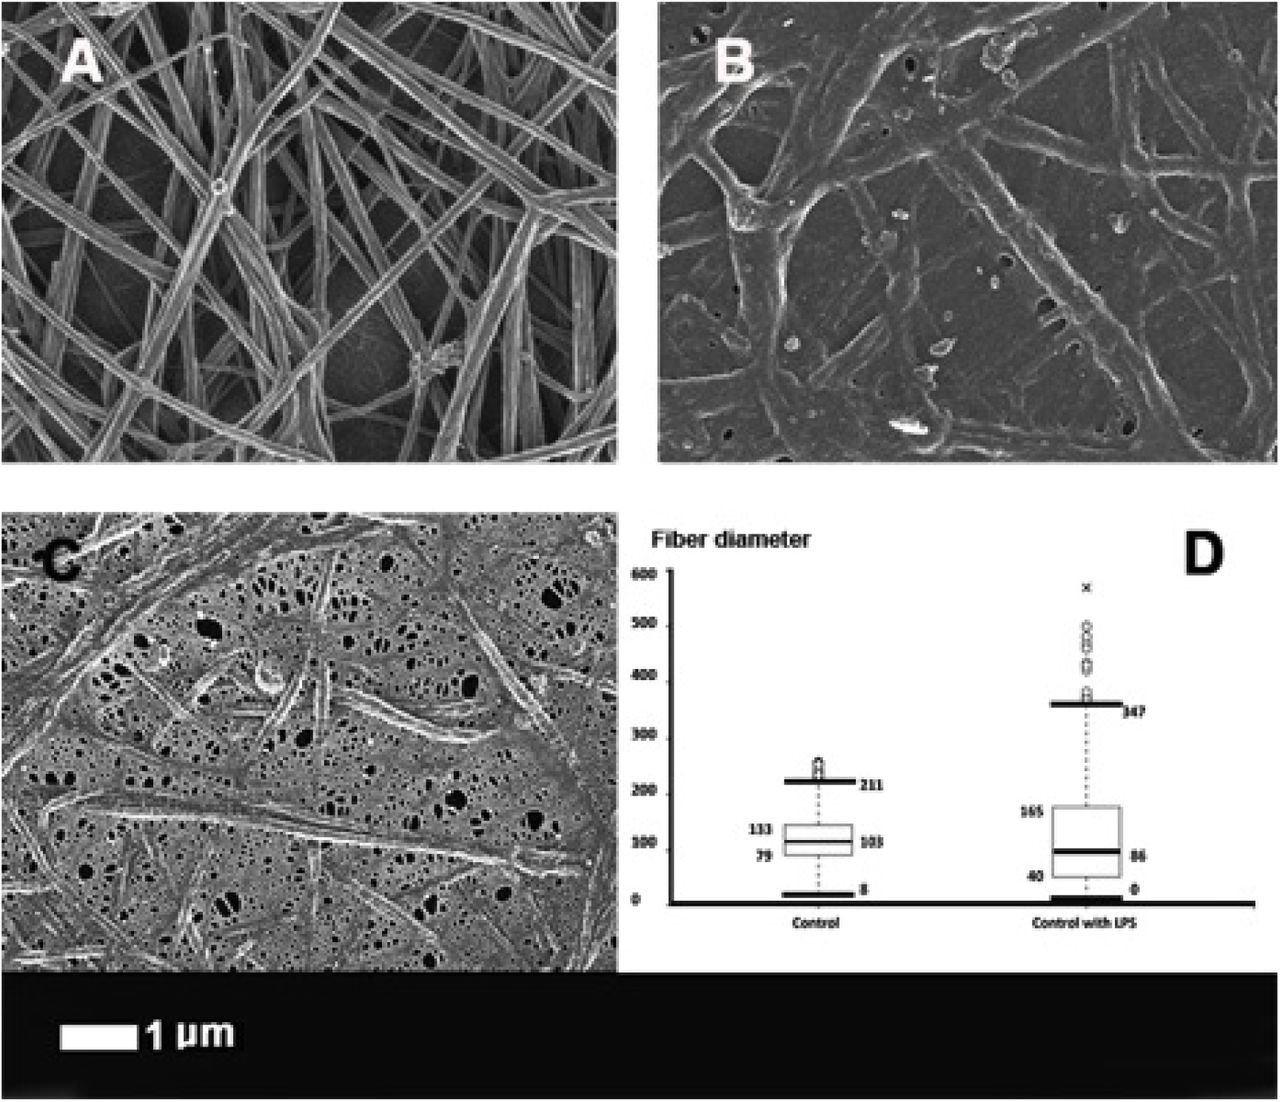 The effect of 0.2 ng.L −1 O111:B4 LPS on the morphology of fibrin fibres in the platelet poor plasma (PPP) of healthy individuals (with added thrombin). A) Healthy fibres; B and C) PPP with added LPS. D) Fibre distribution of the control fibres and of controls with added LPS of 30 individuals. Note: in samples with added LPS there were areas of matted layers with no visible fibres to measure. Fibres were measured using ImageJ as described in Materials and Methods.